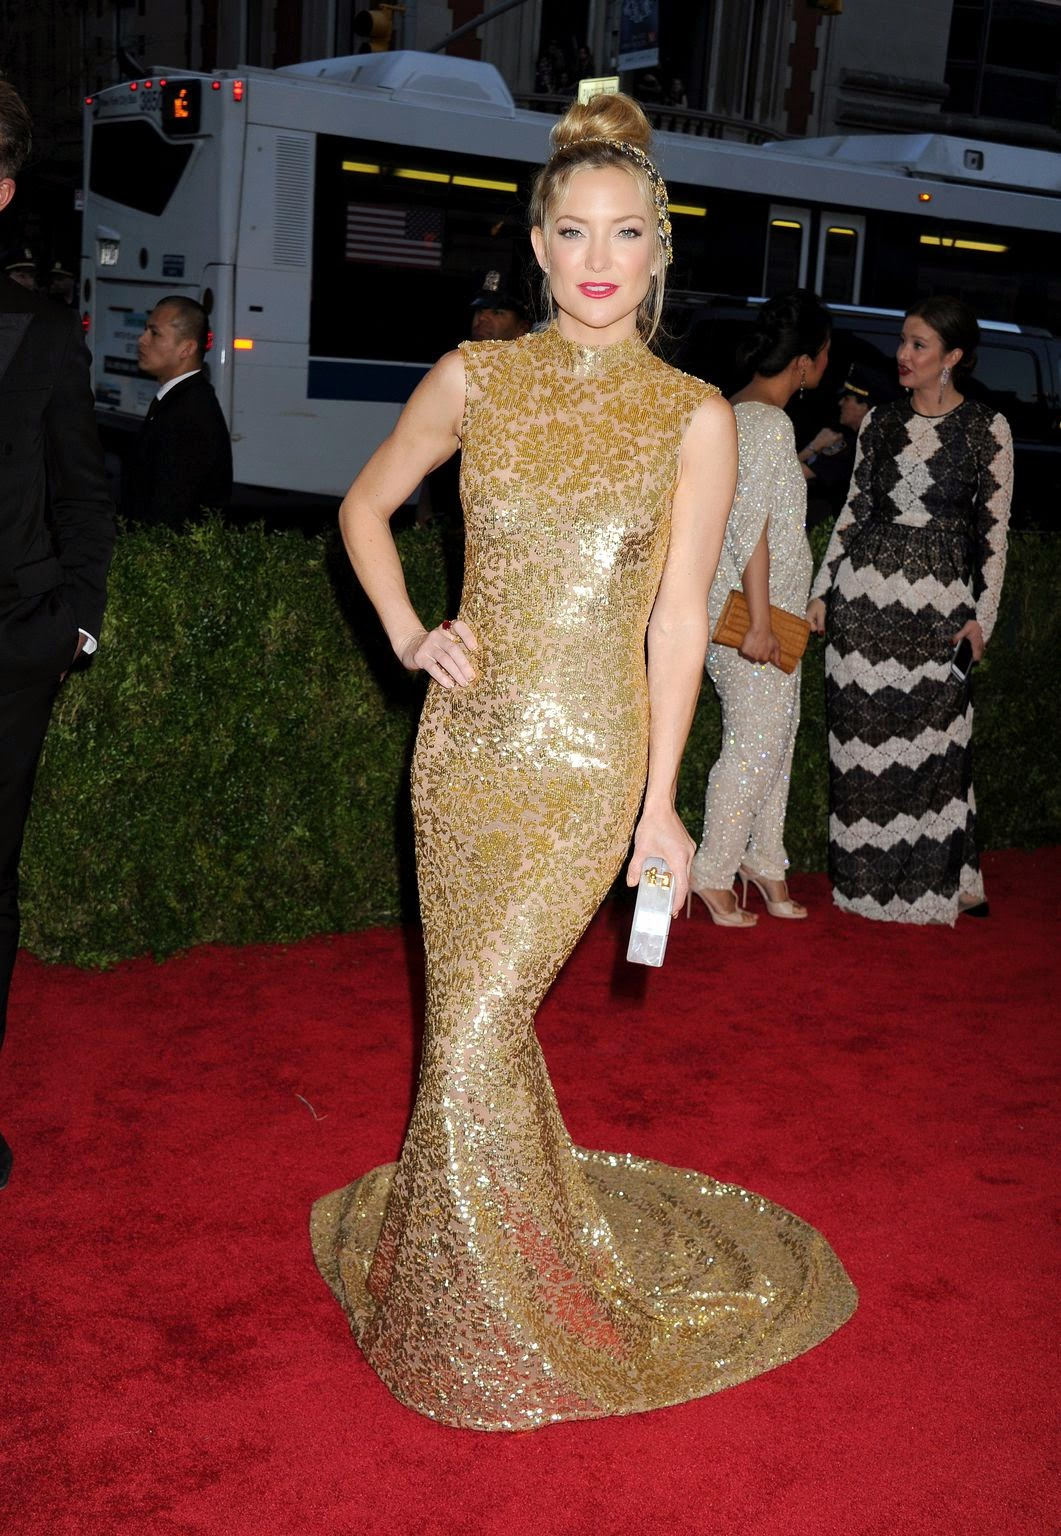 Kate Hudson dazzles in gold Michael Kors at the 2015 Met Gala in NYC